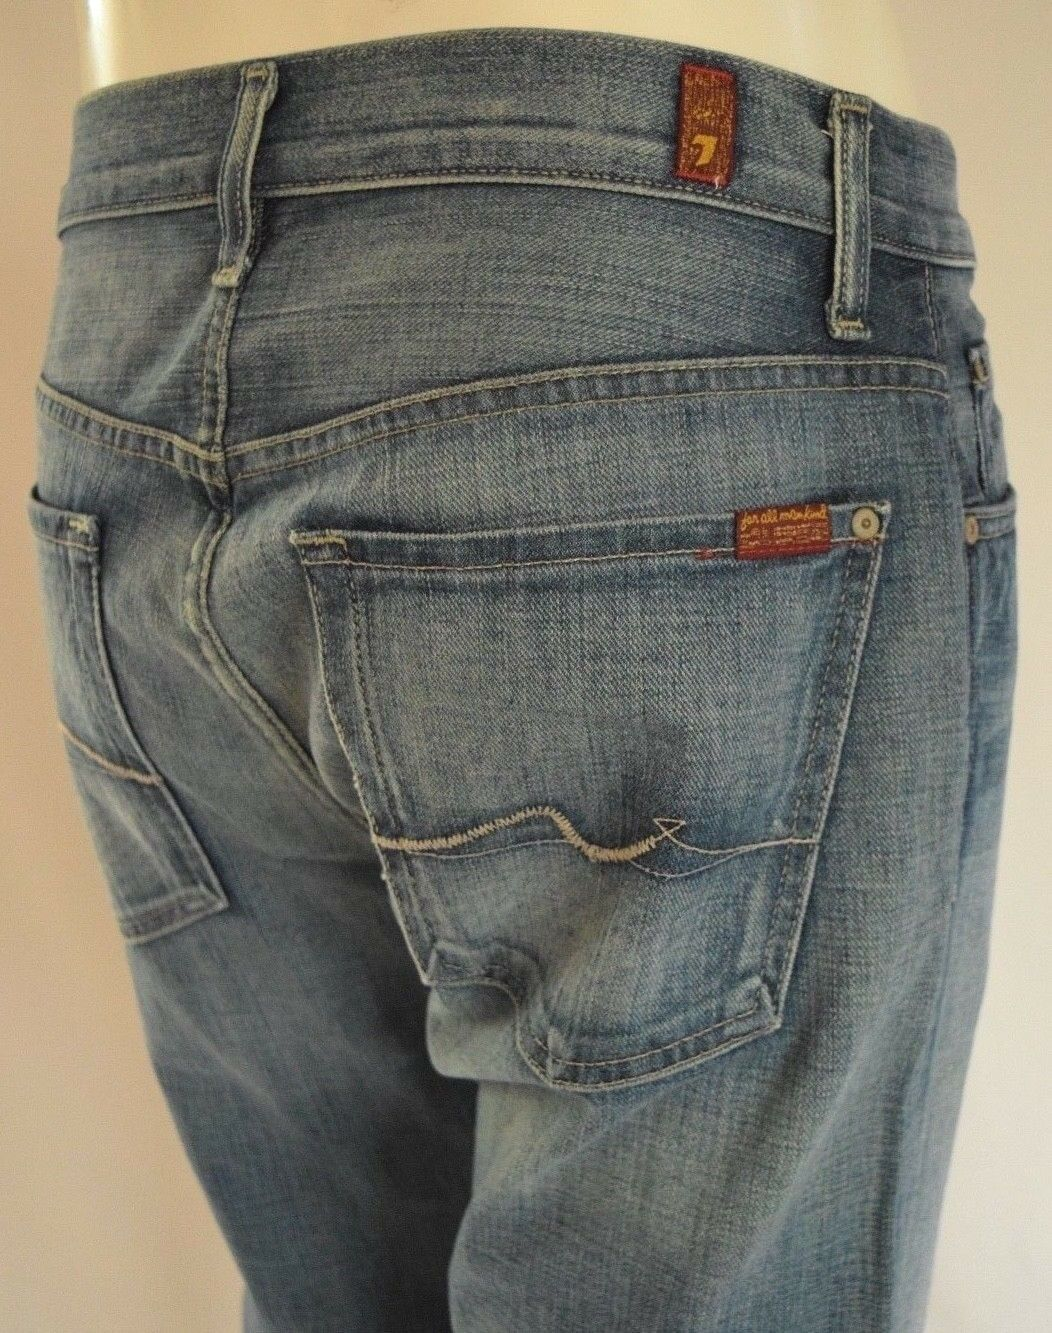 64c0be3a Seven For All Mankind AUSTYN STRAIGHT Jeans Men 31 in LIGHT blueE 7 RELAXED  ouayyw7437-Jeans